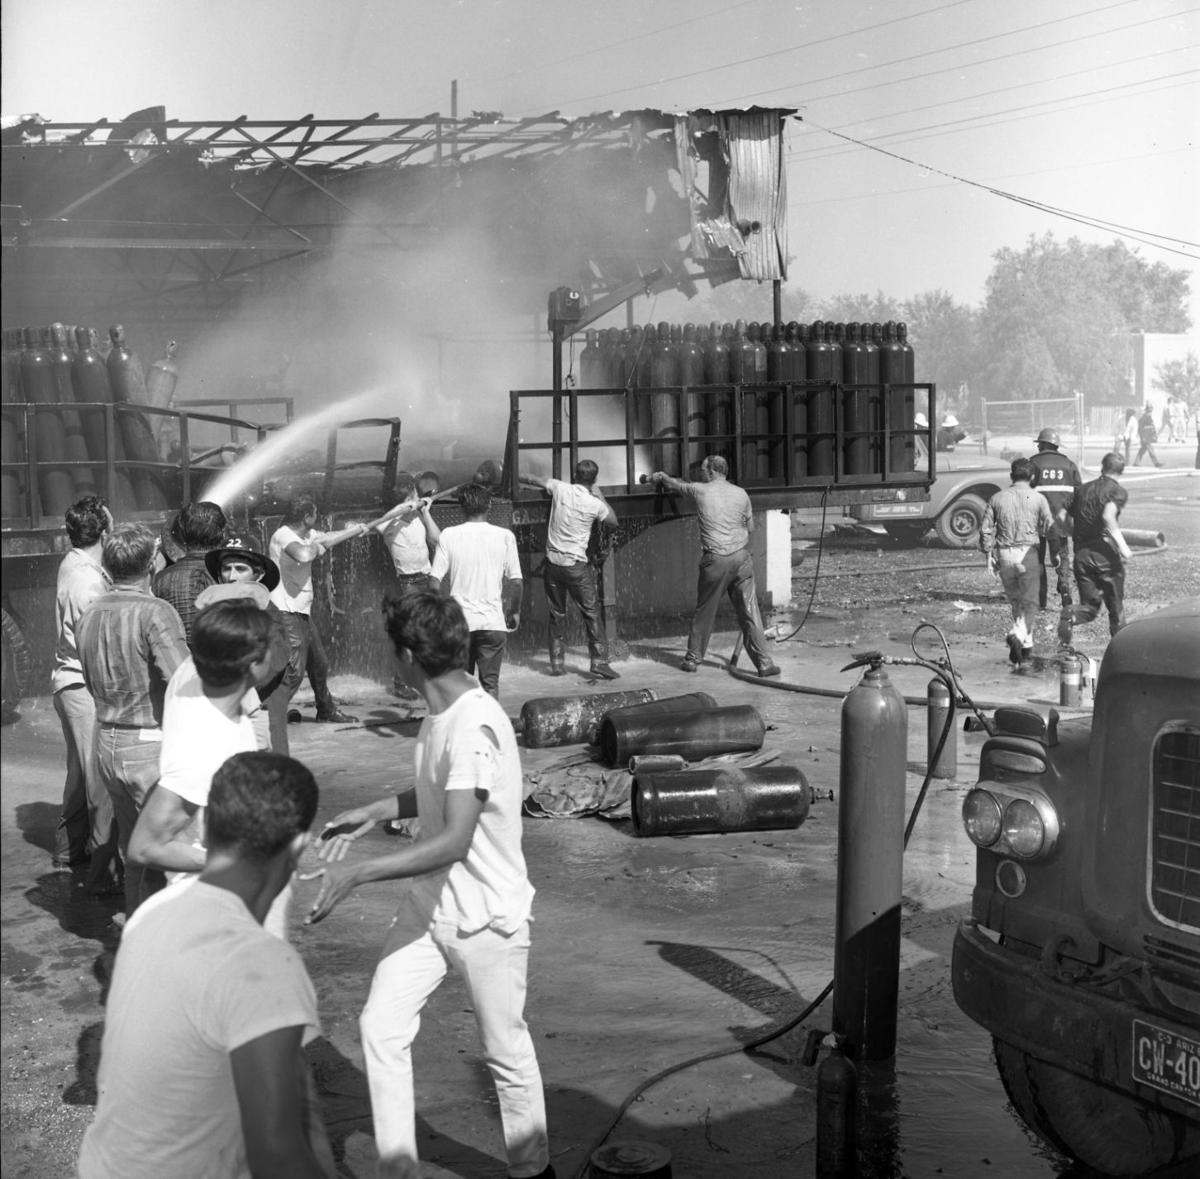 Explosions at Dye Oxygen Co. in 1965